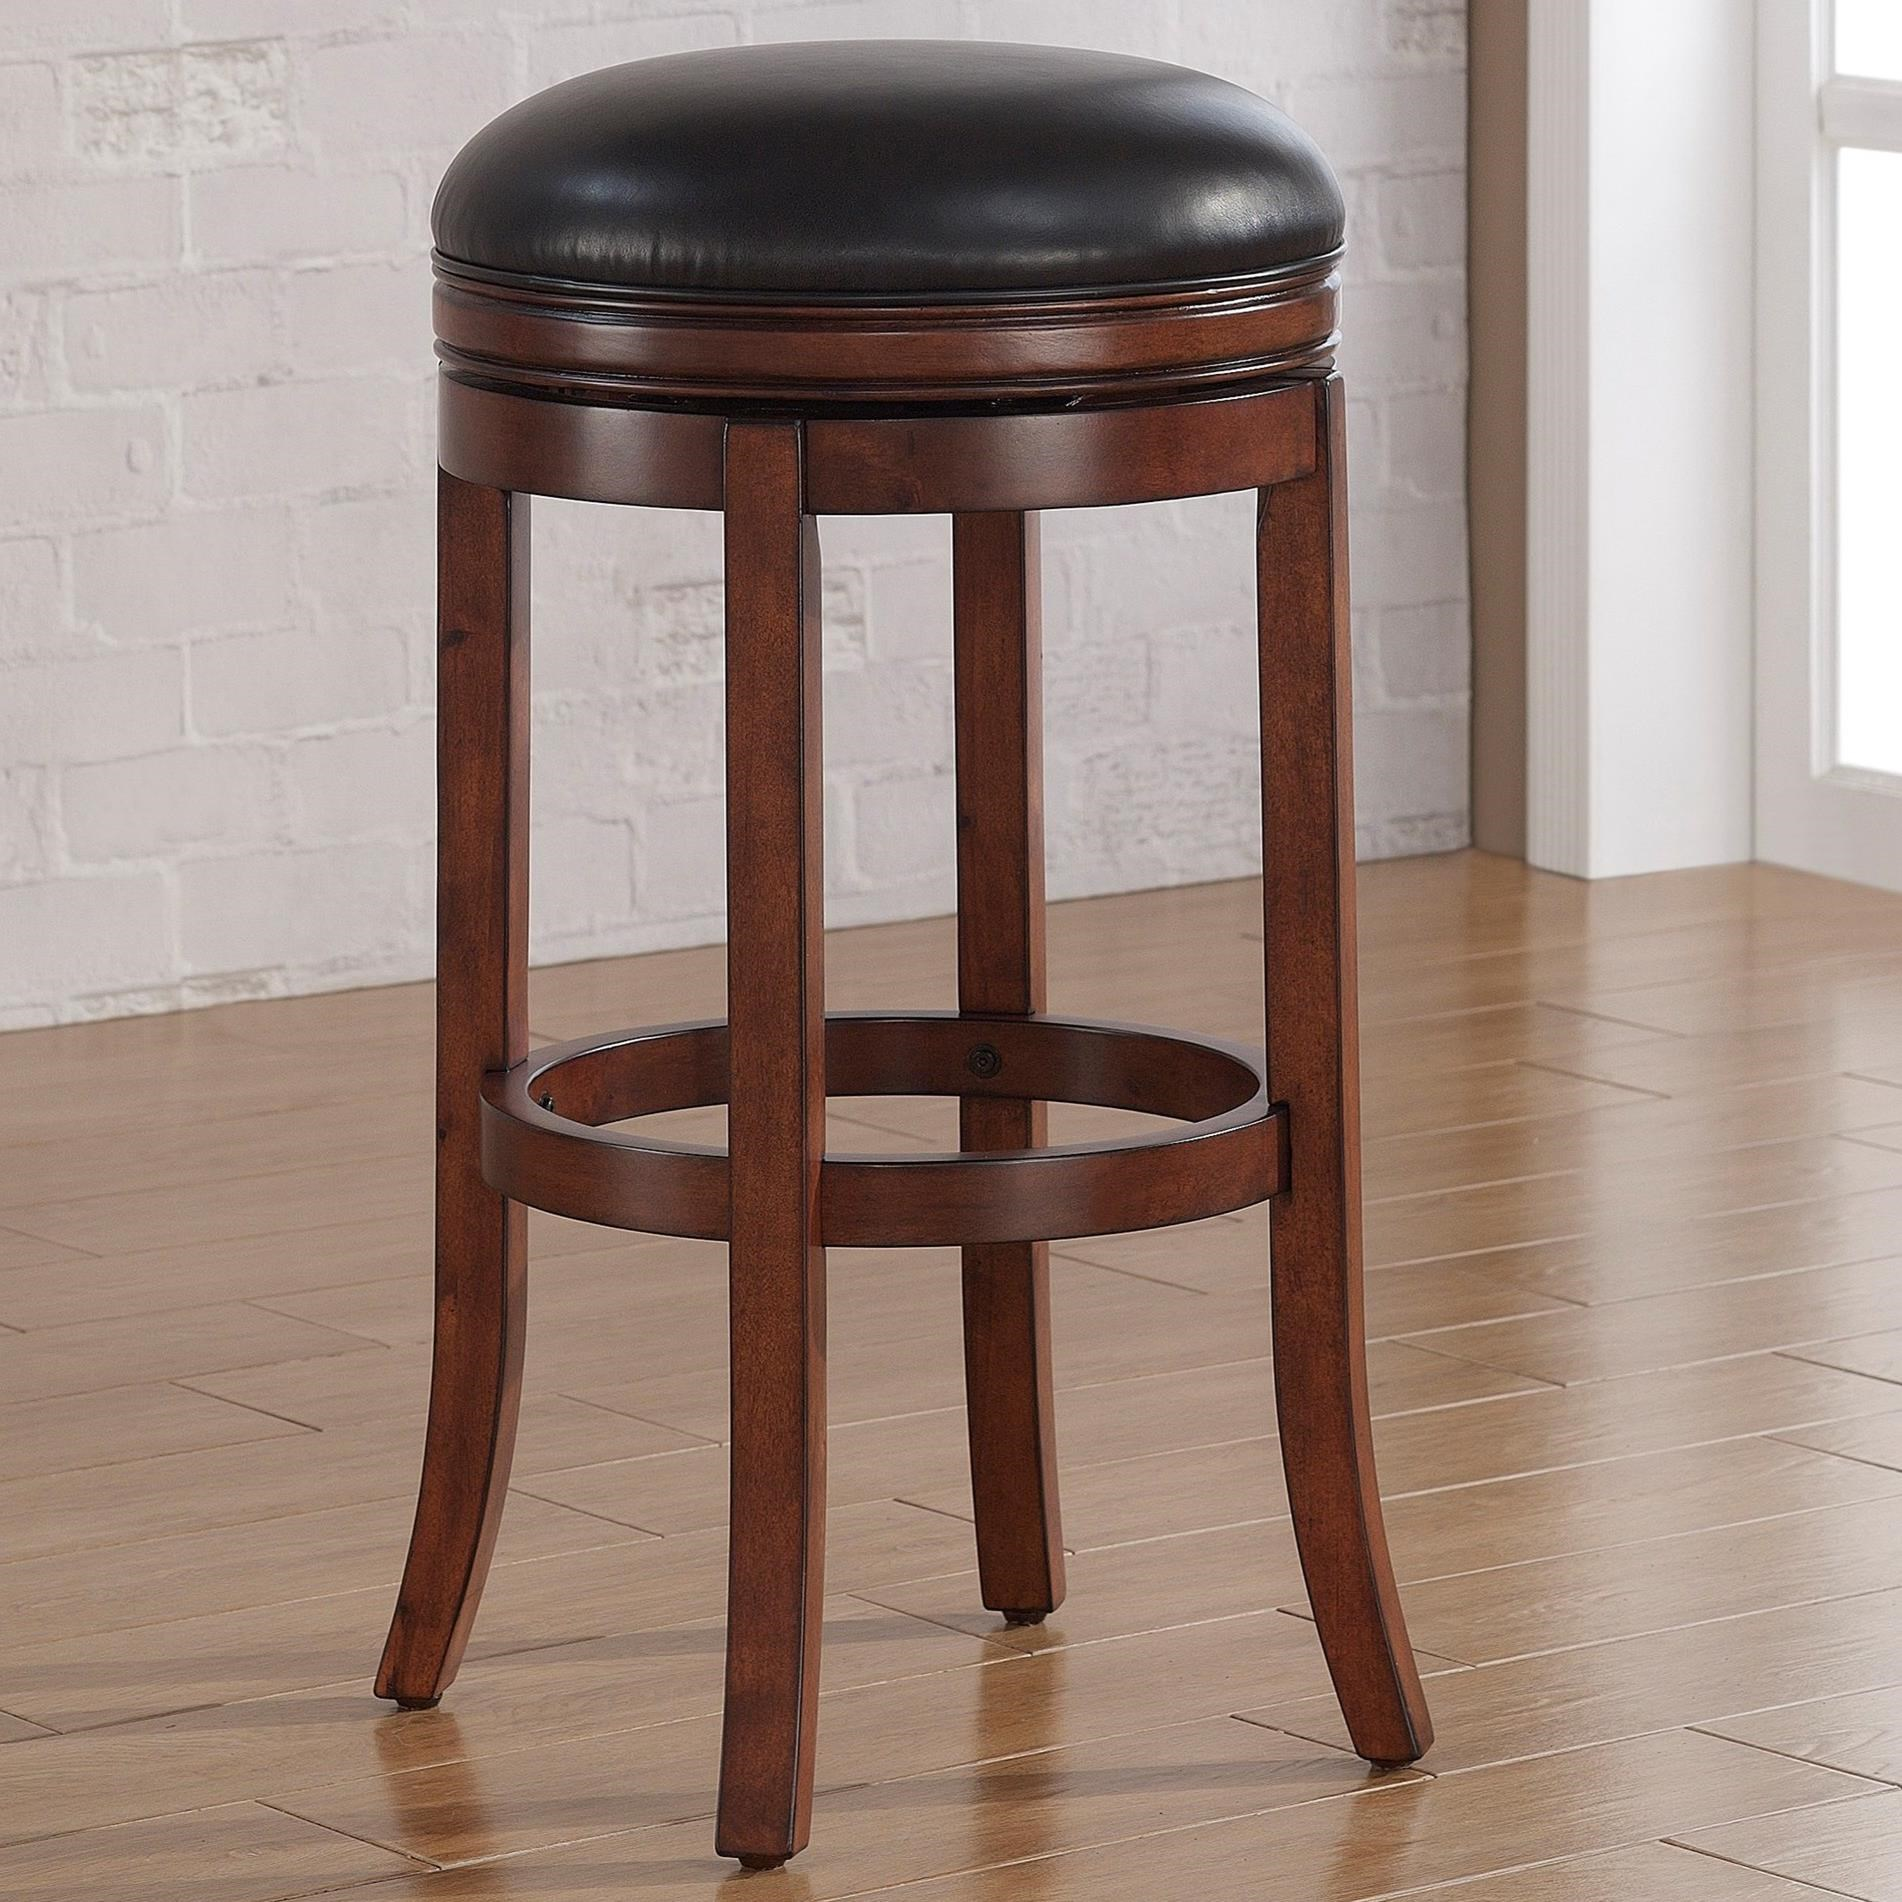 American Woodcrafters Barstools Backless Wood Stool - Item Number: B2-200-34L